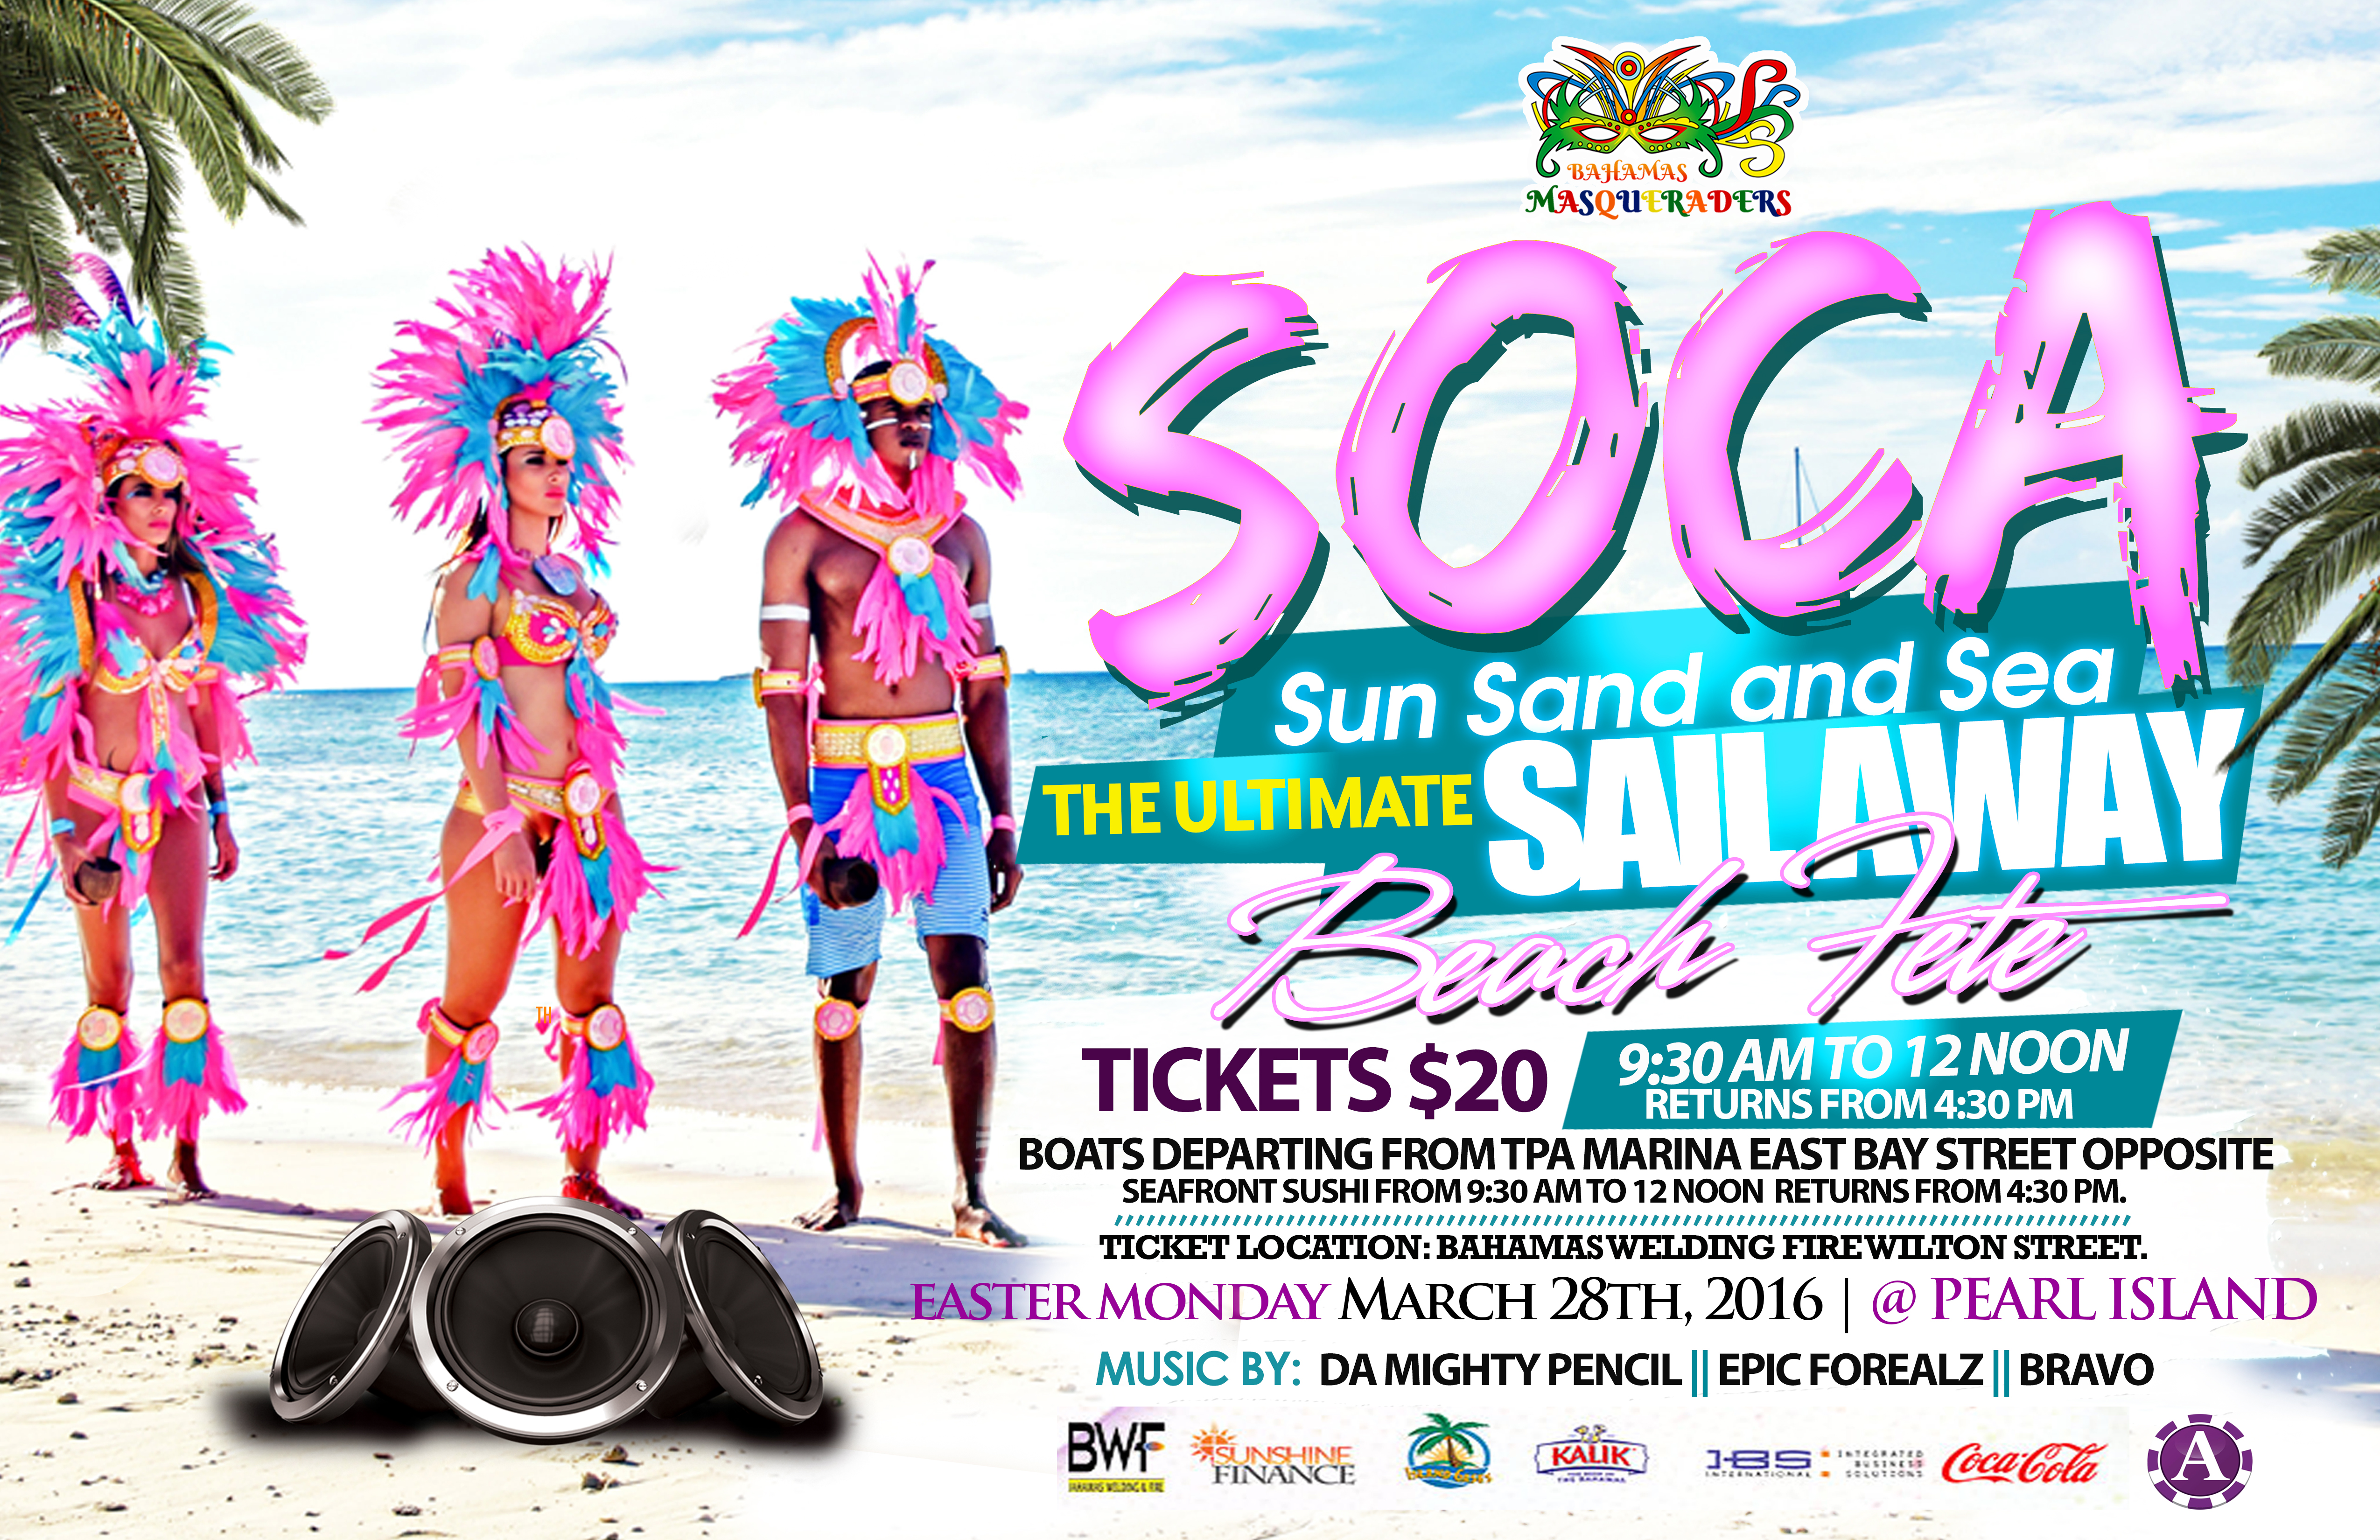 Bahamas Masqueraders Easter Monday Sail Away and beach fete March 28, 2016 Bahamas Junkanoo Carnival